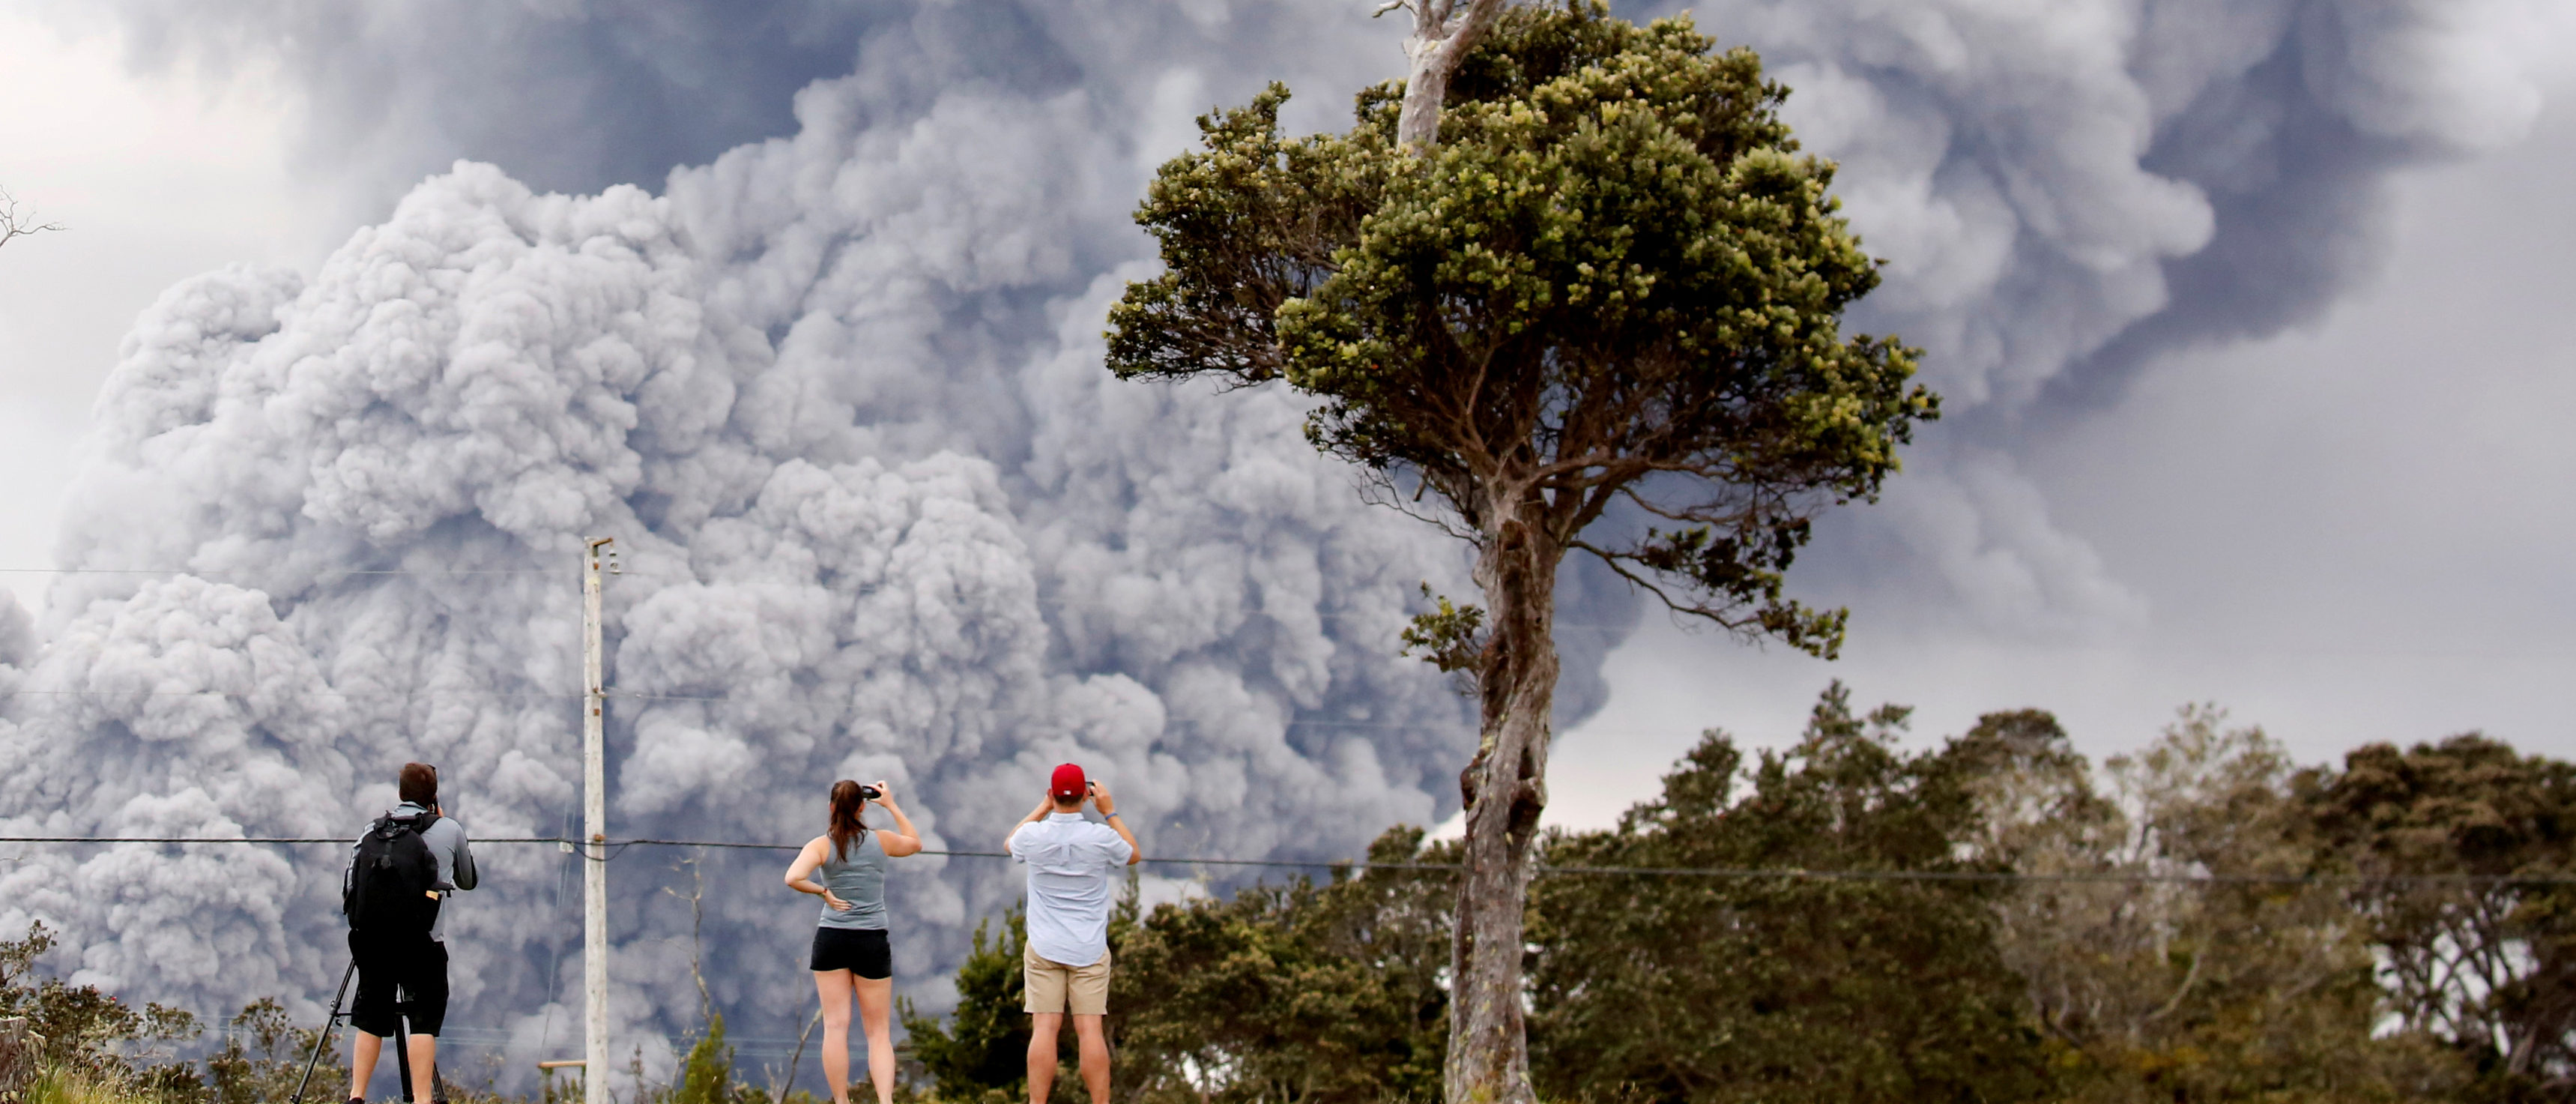 People watch as ash erupts from the Halemaumau crater near the community of Volcano during ongoing eruptions of the Kilauea Volcano in Hawaii, May 15, 2018. REUTERS/Terray Sylvester